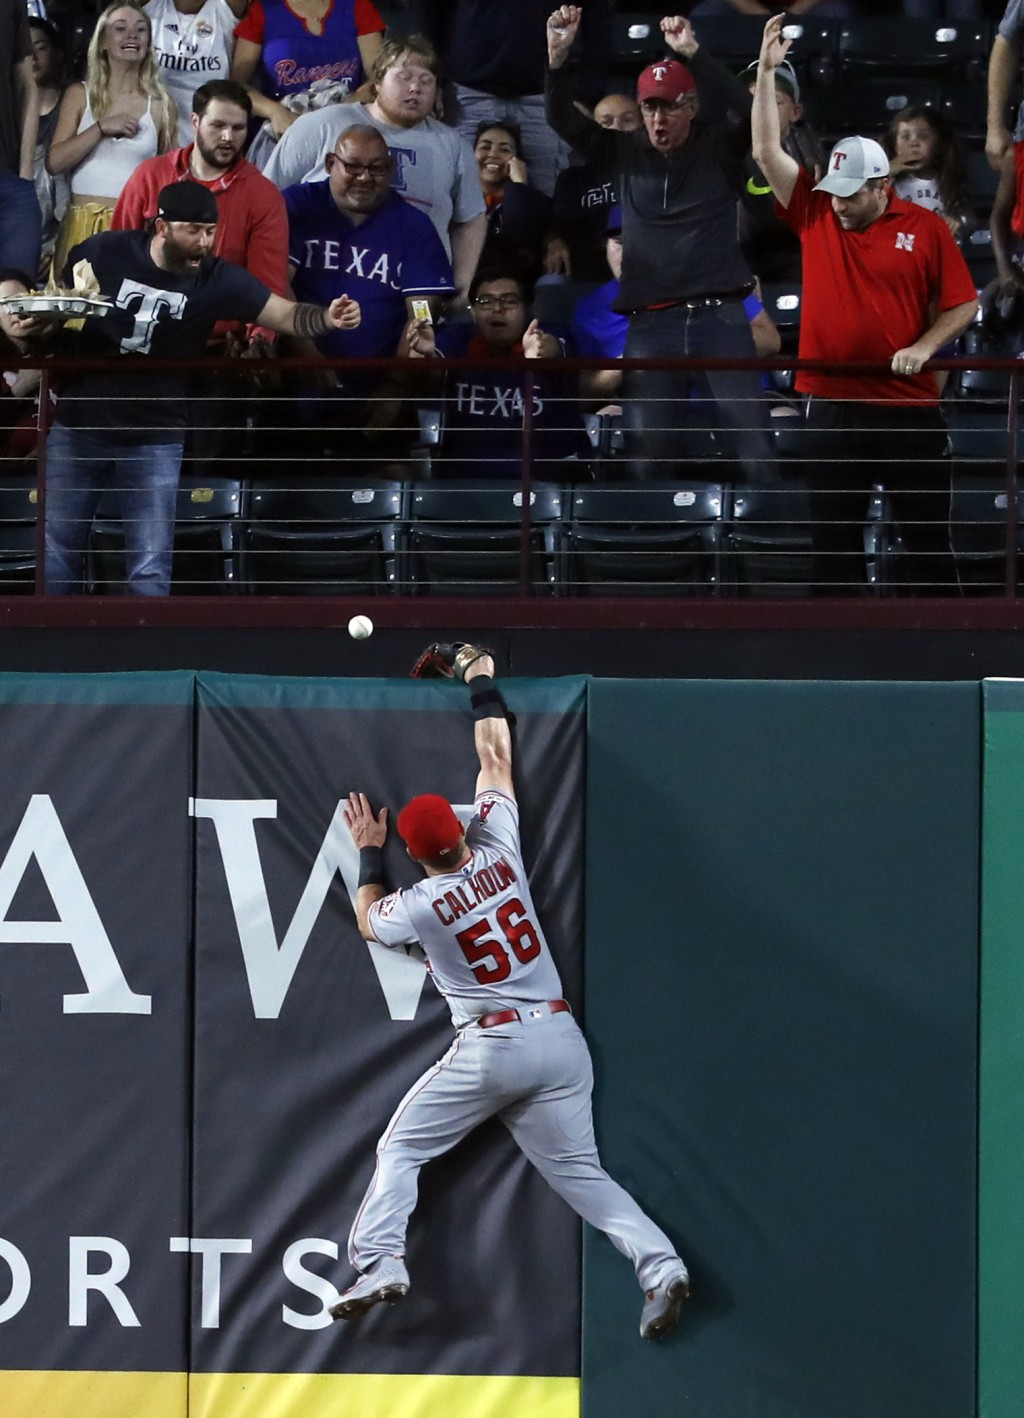 Fans watch as a ball that bounced off the top of Los Angeles Angels right fielder Kole Calhoun's glove falls over the wall for a two-run home run by T